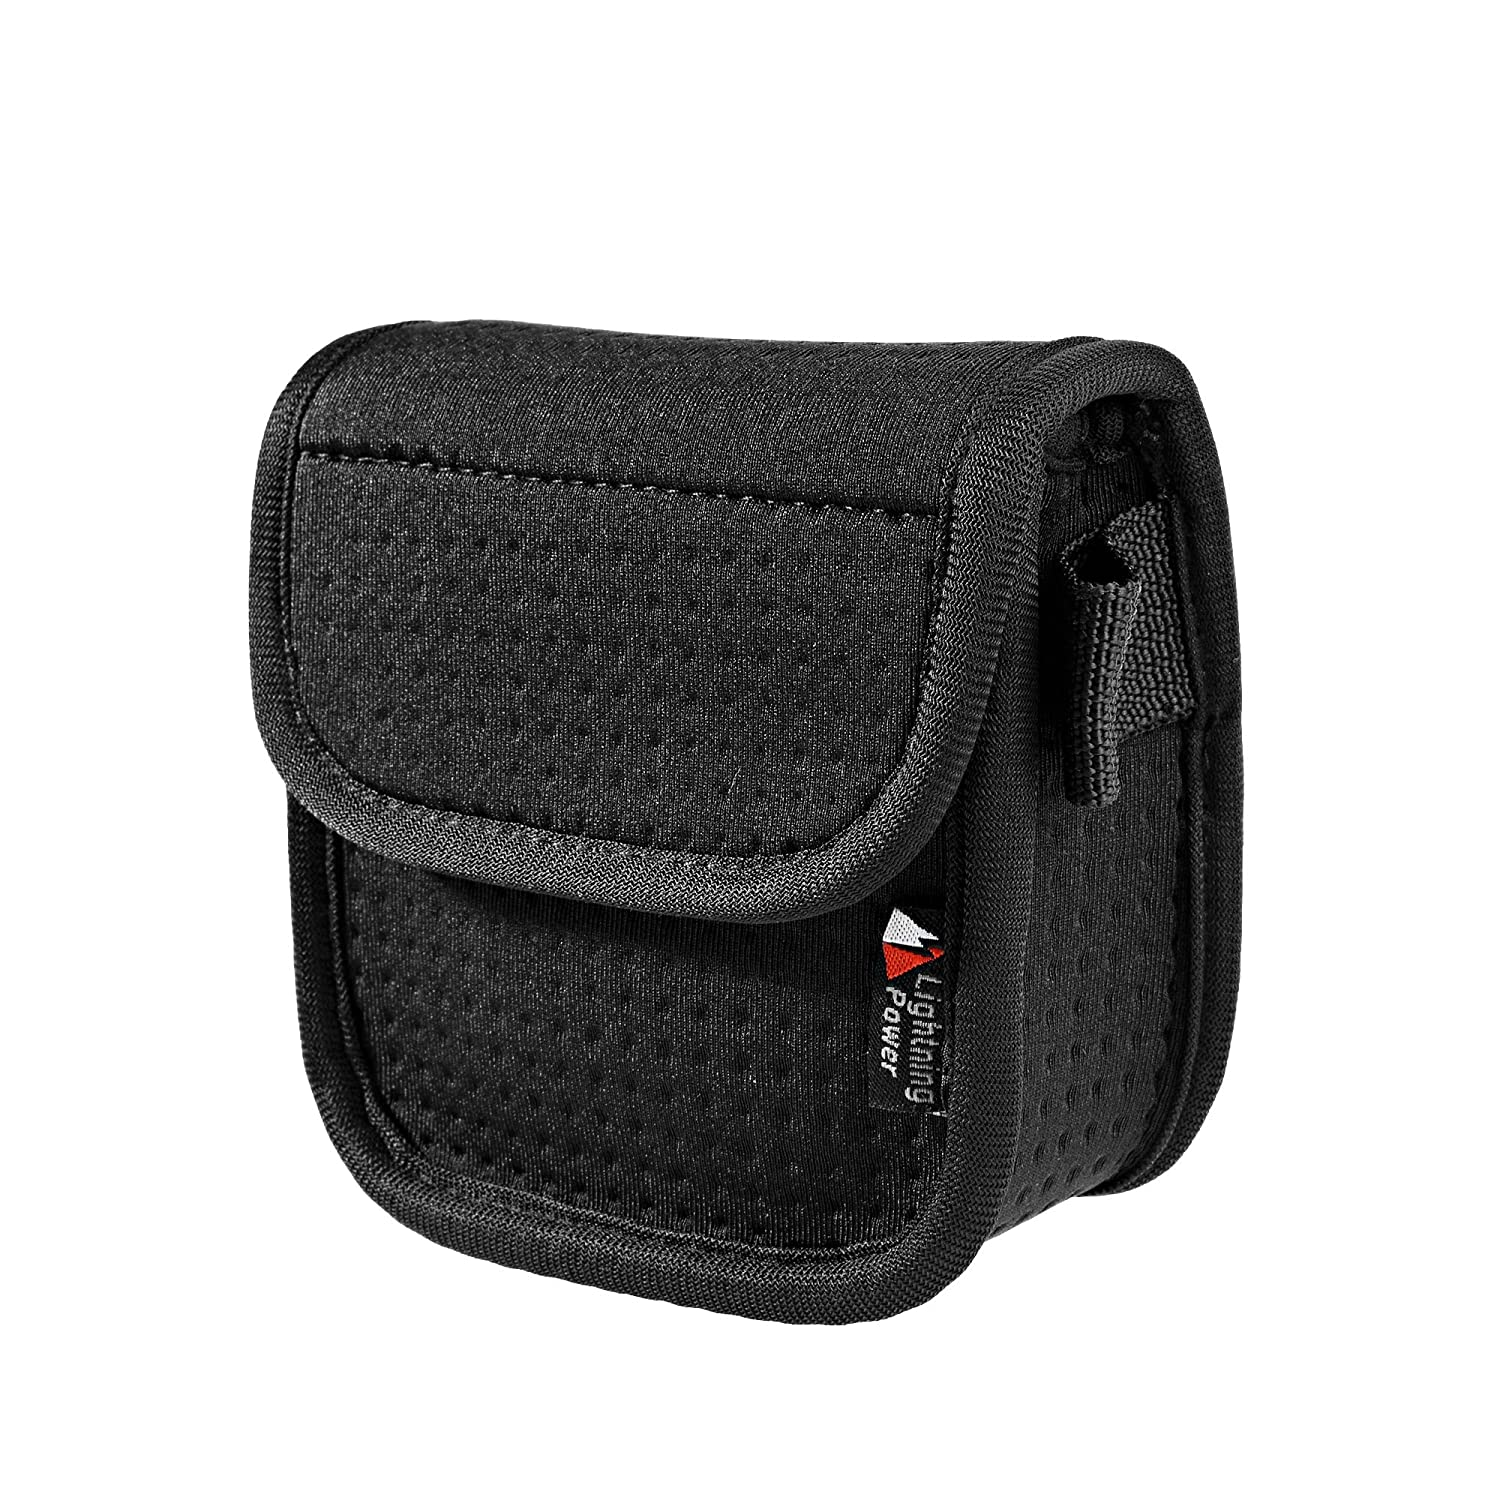 Padded Nylon Waist Pouch with Hanging Loop for Bose Soundlink Micro Portable Speaker TXesign 4334416360